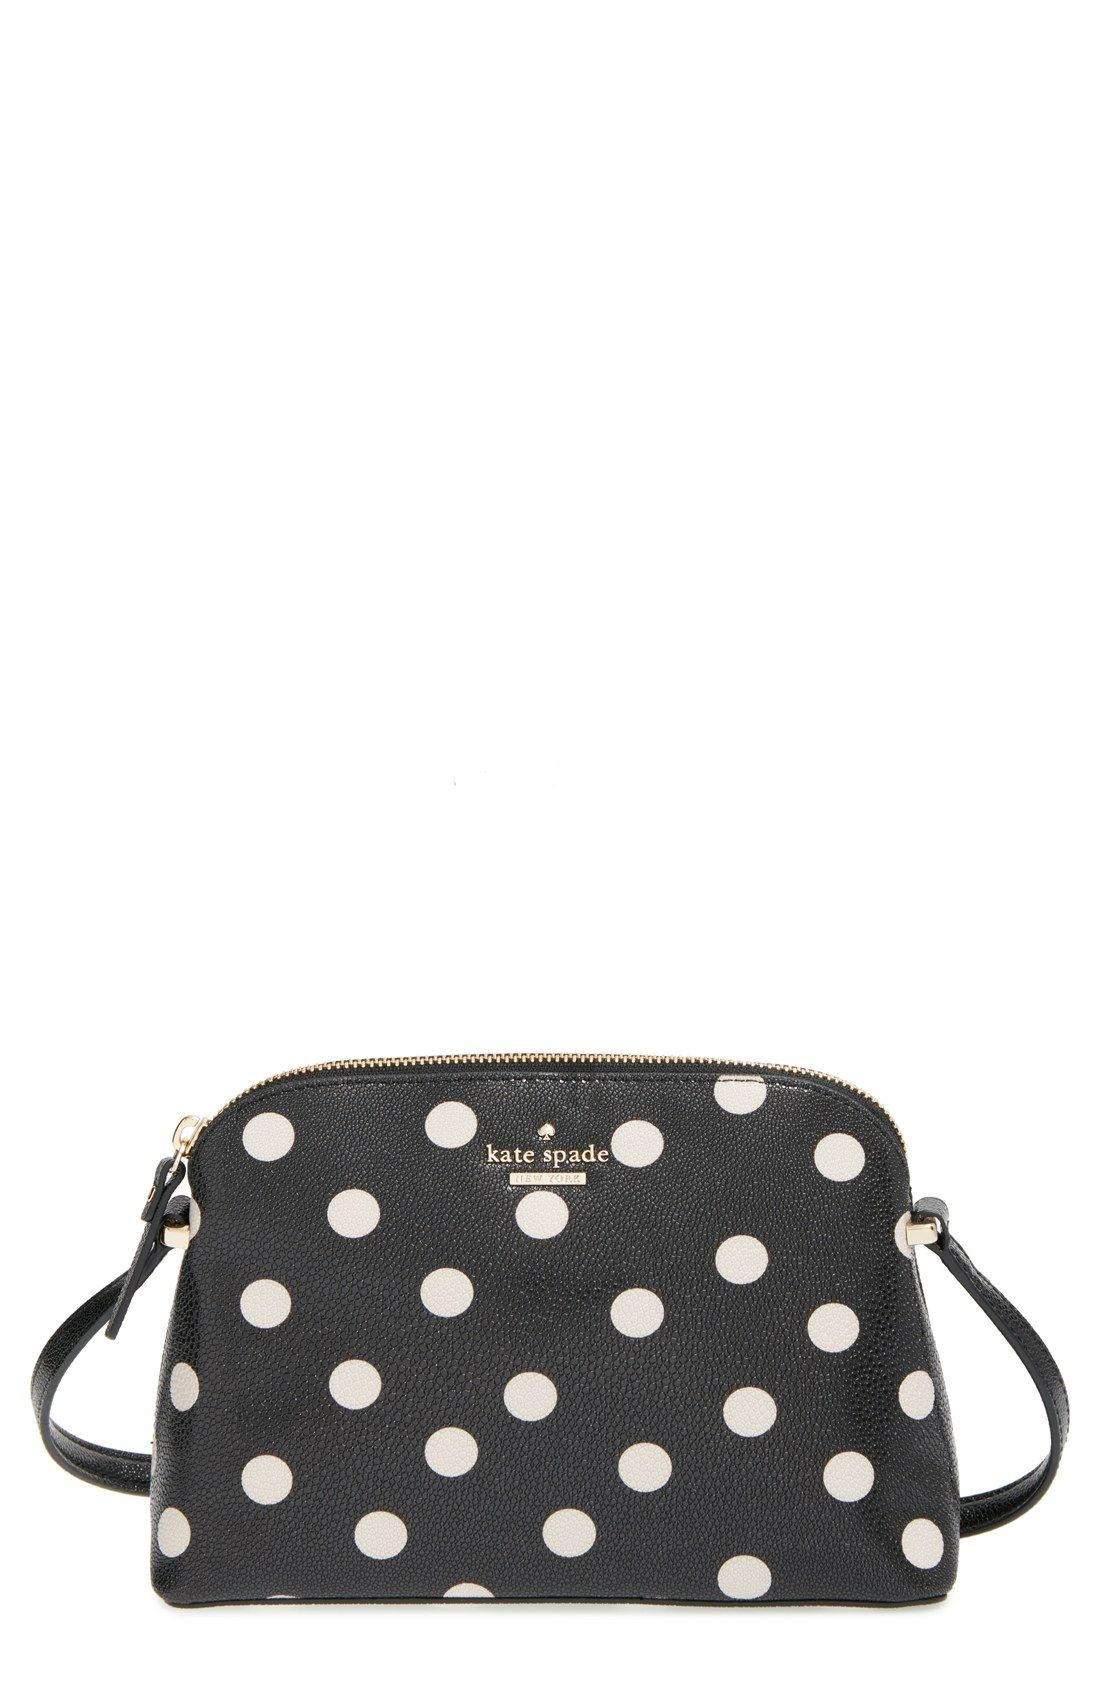 Black and white polka dots add flair to this Kate Spade crossbody ... e7cd4bbb66